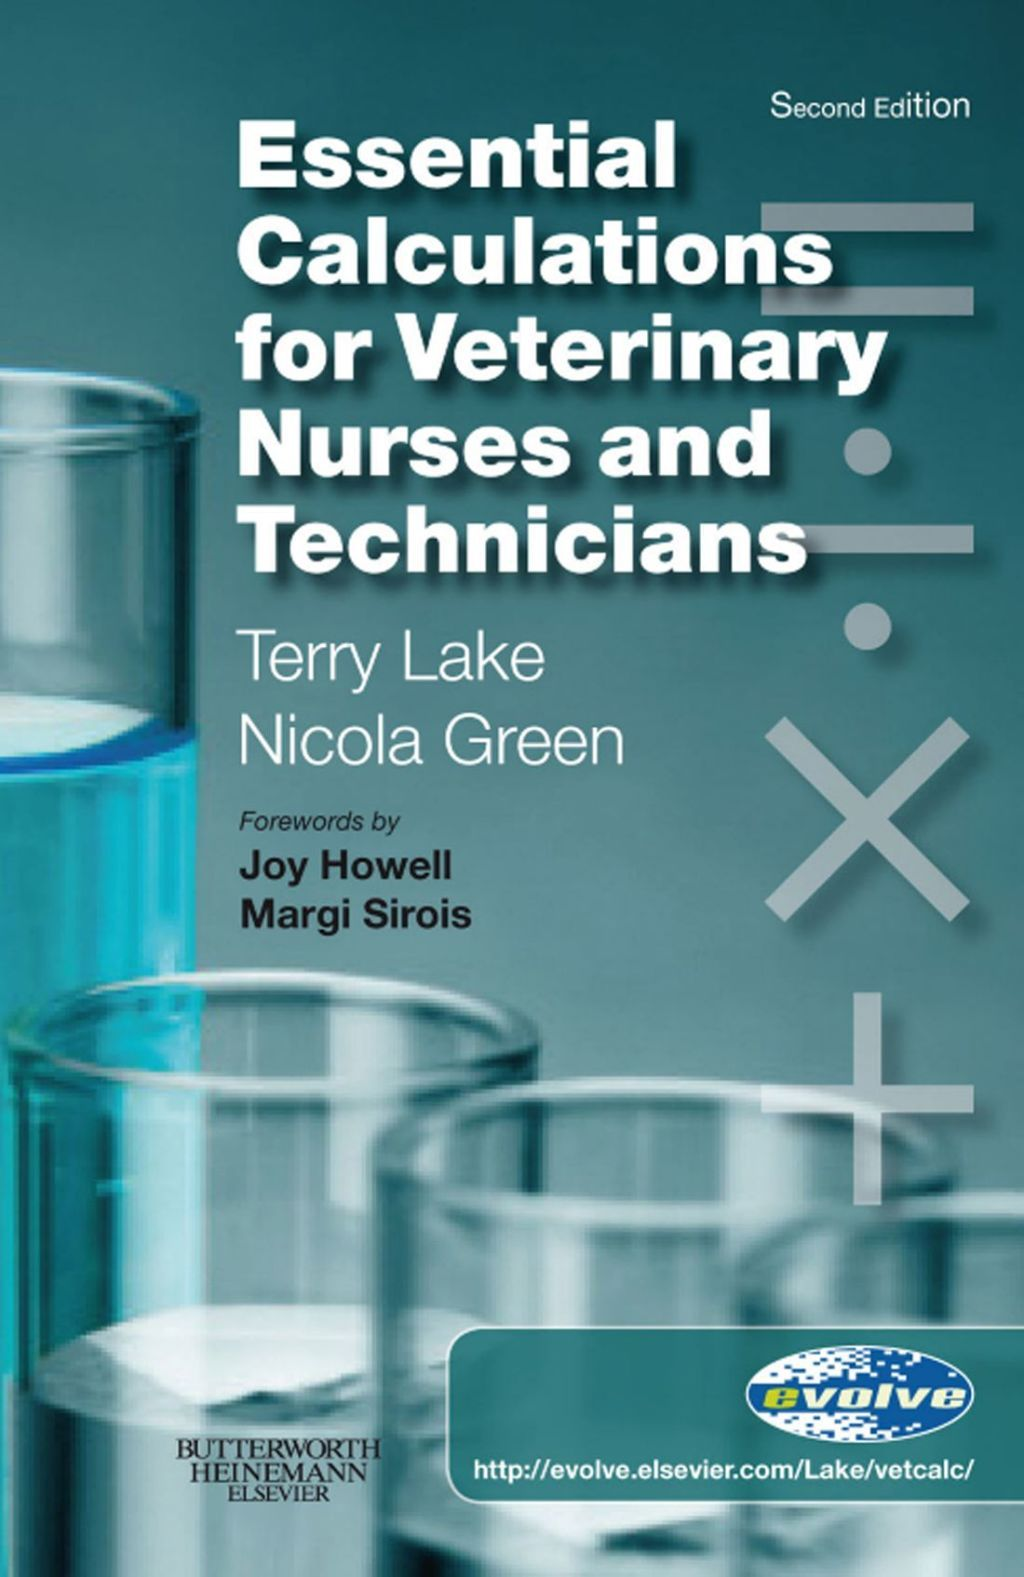 Essential Calculations for Veterinary Nurses and